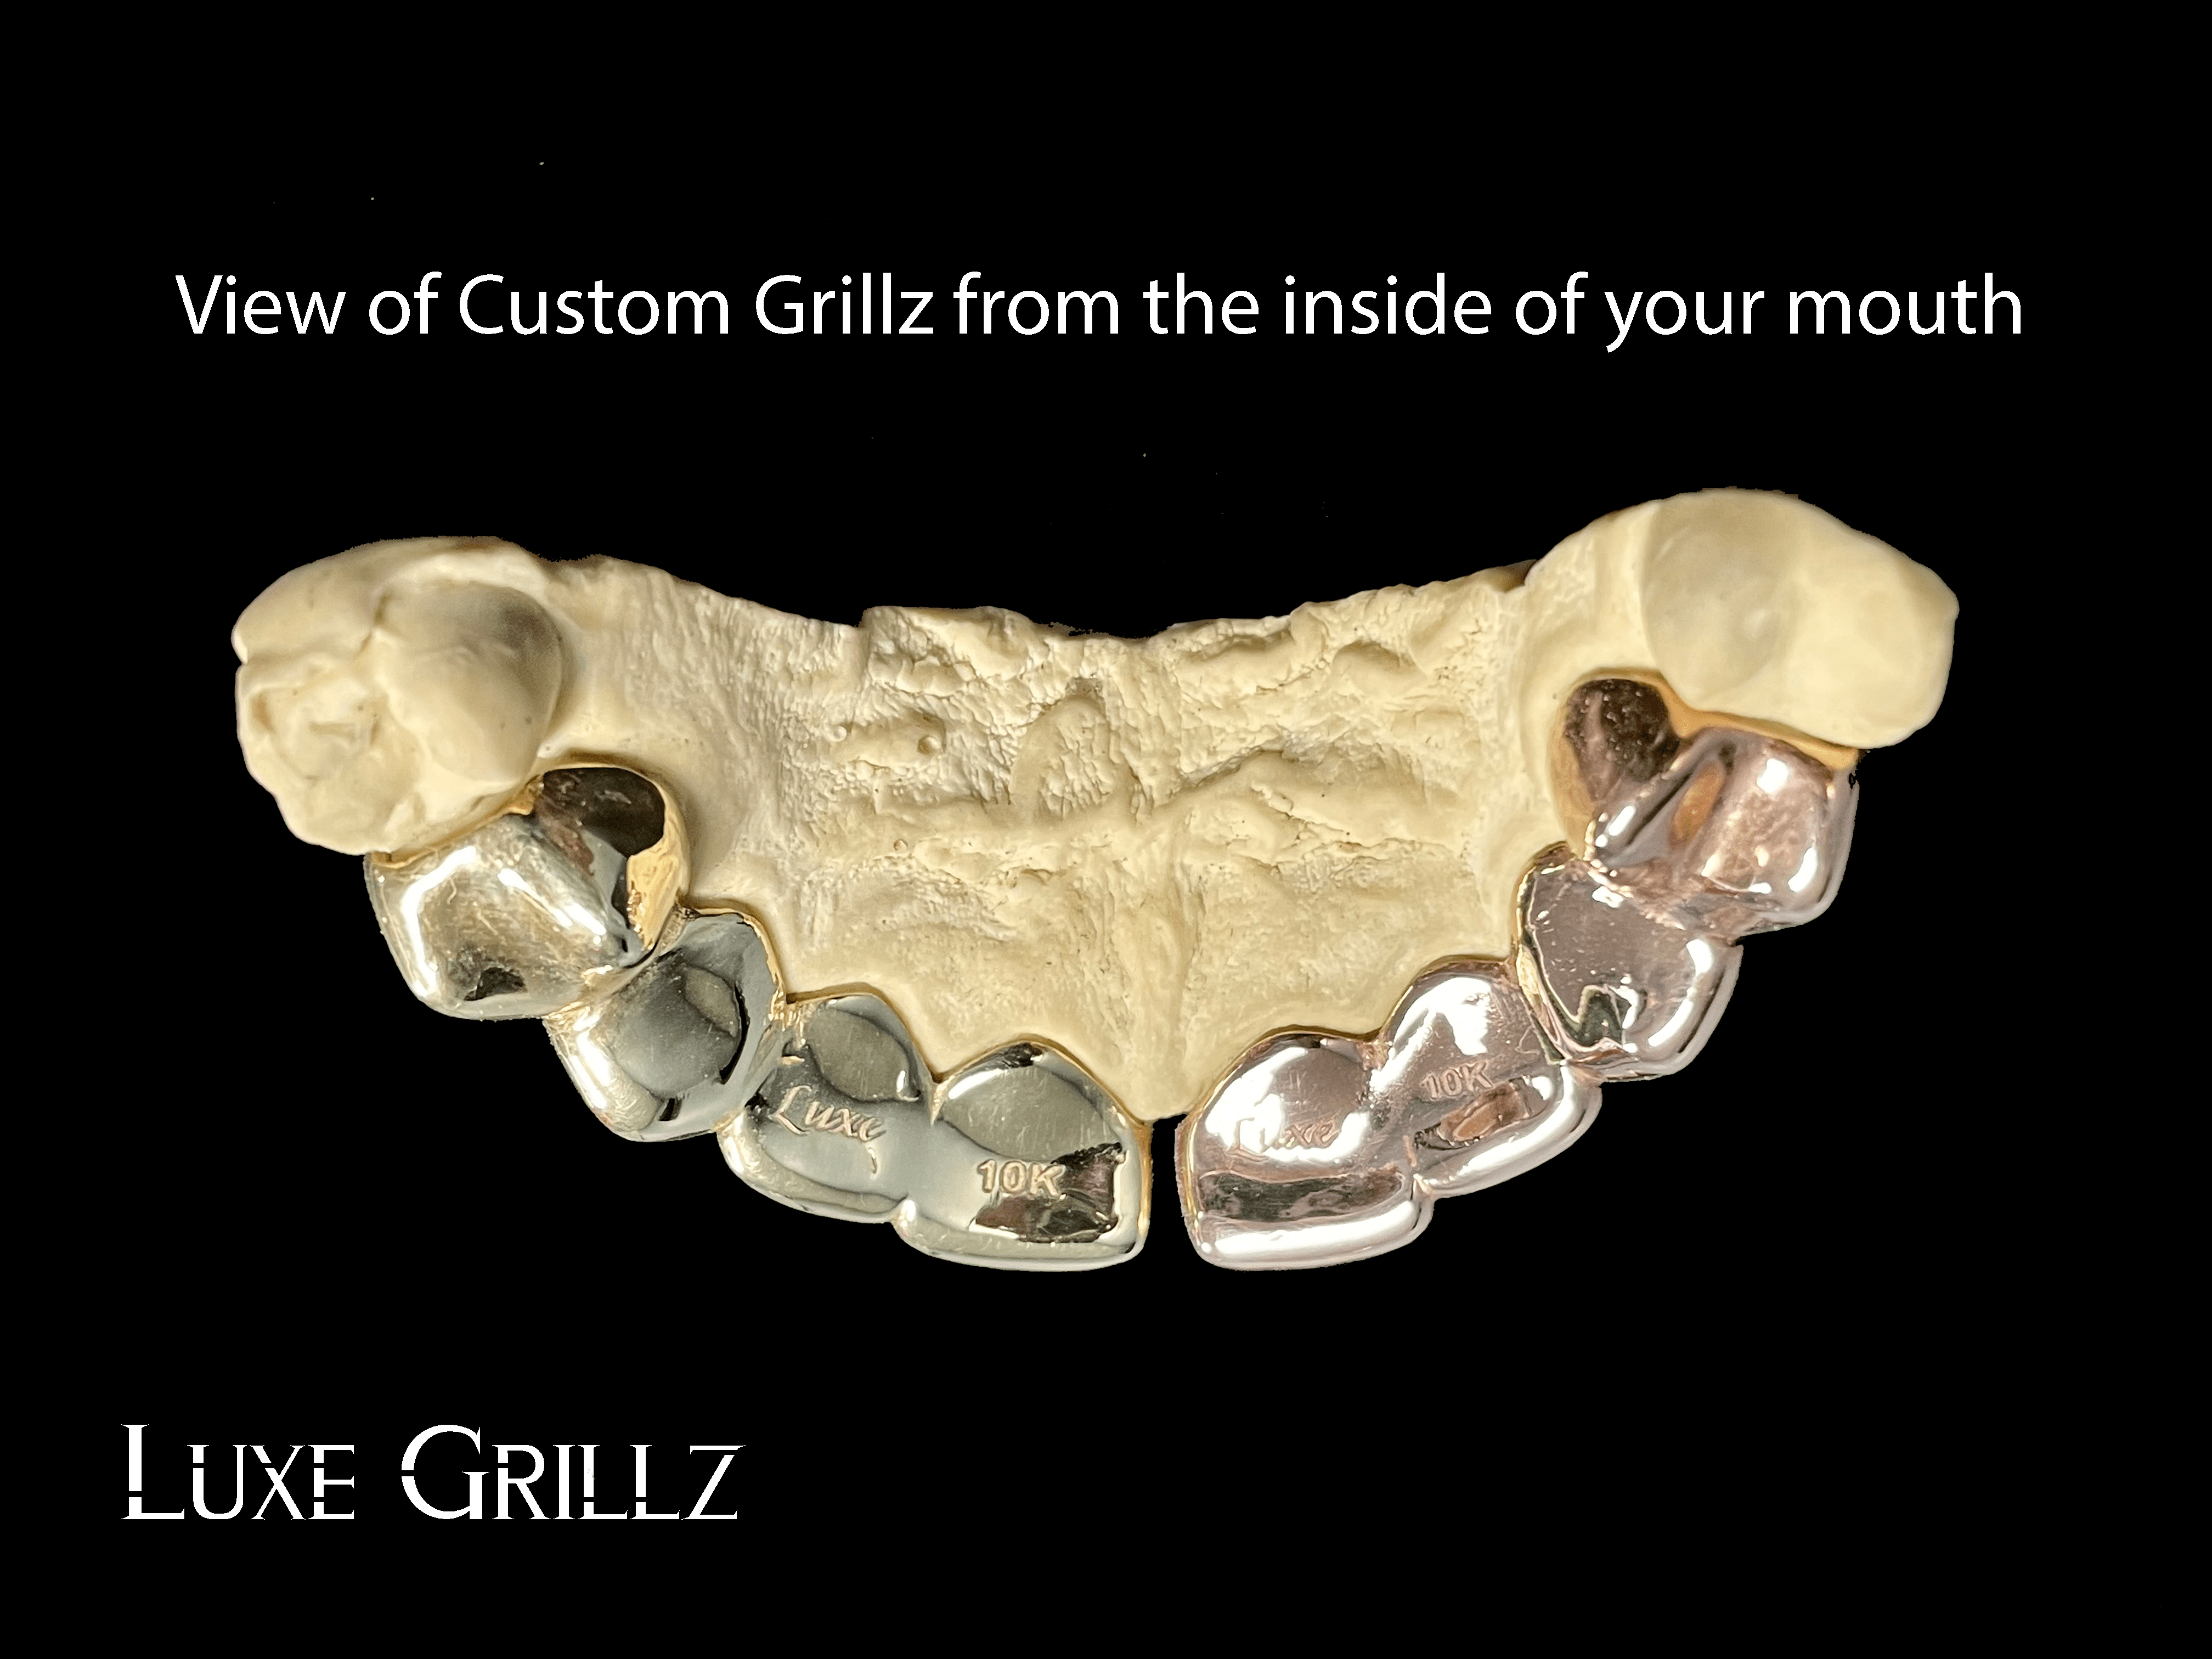 How to Put Grillz On?